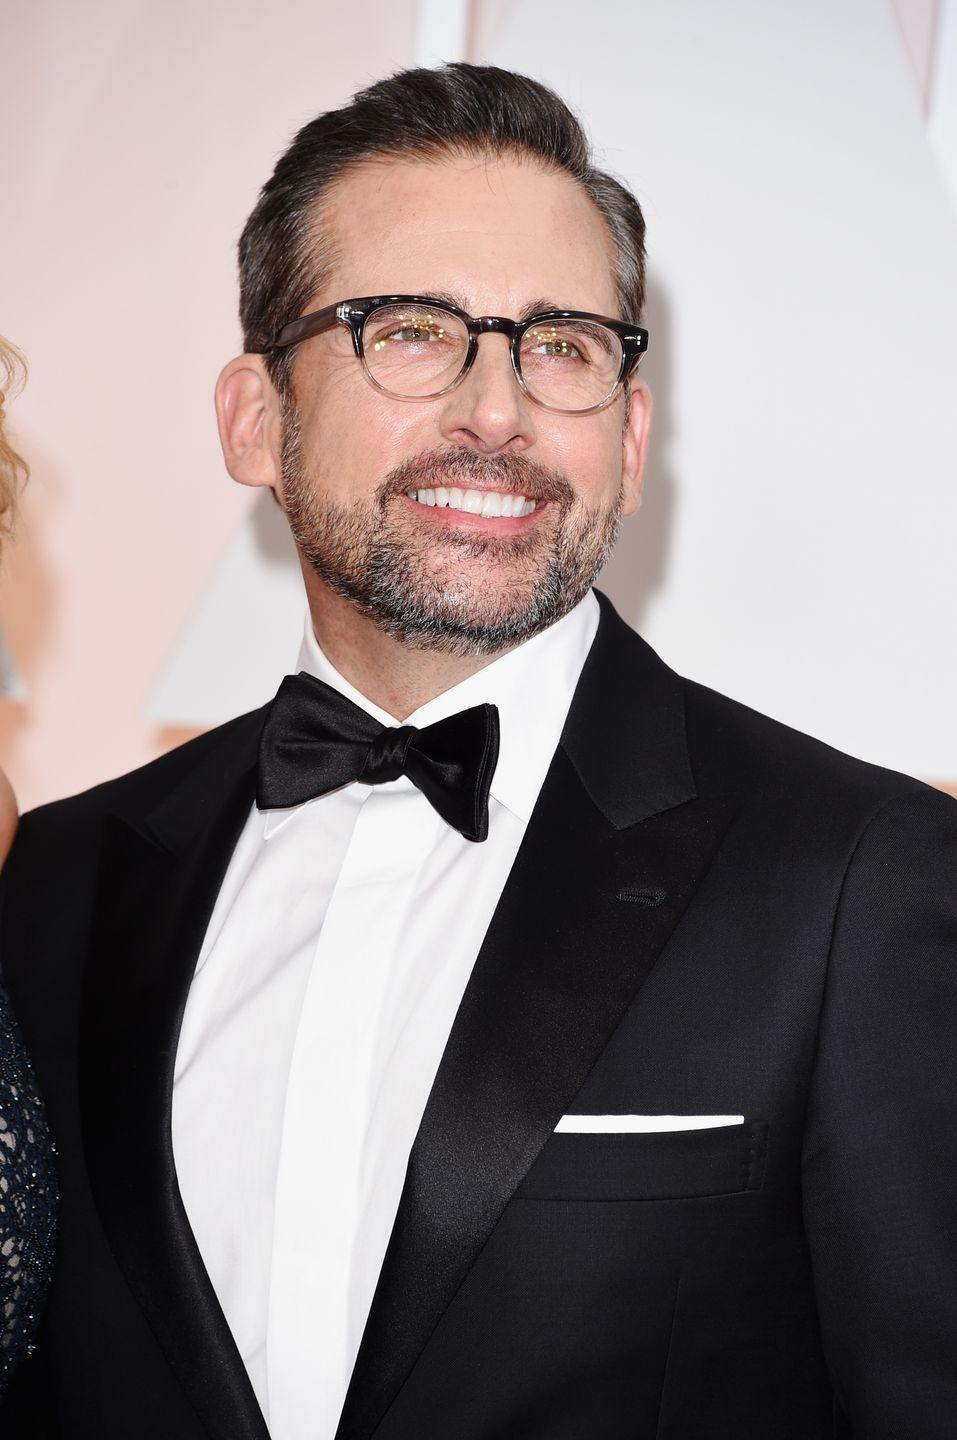 "<p>Steve Carell made a name for himself as the boss of Dunder Mifflin, but after season 7, he handed in his resignation. Many thought the actor left to pursue a film career, but in a <a href=""https://www.officetally.com/steve-carell-to-leave-the-office-after-season-7"" rel=""nofollow noopener"" target=""_blank"" data-ylk=""slk:2010 BBC interview"" class=""link rapid-noclick-resp"">2010 BBC interview</a>, Carell said his contract was up after the show's seventh season. He <a href=""https://www.goodhousekeeping.com/life/entertainment/a31982130/why-did-steve-carell-leave-the-office/"" rel=""nofollow noopener"" target=""_blank"" data-ylk=""slk:hadn't intended to leave"" class=""link rapid-noclick-resp"">hadn't intended to leave</a>, but after NBC didn't offer up negotiations, he decided to move on.</p>"